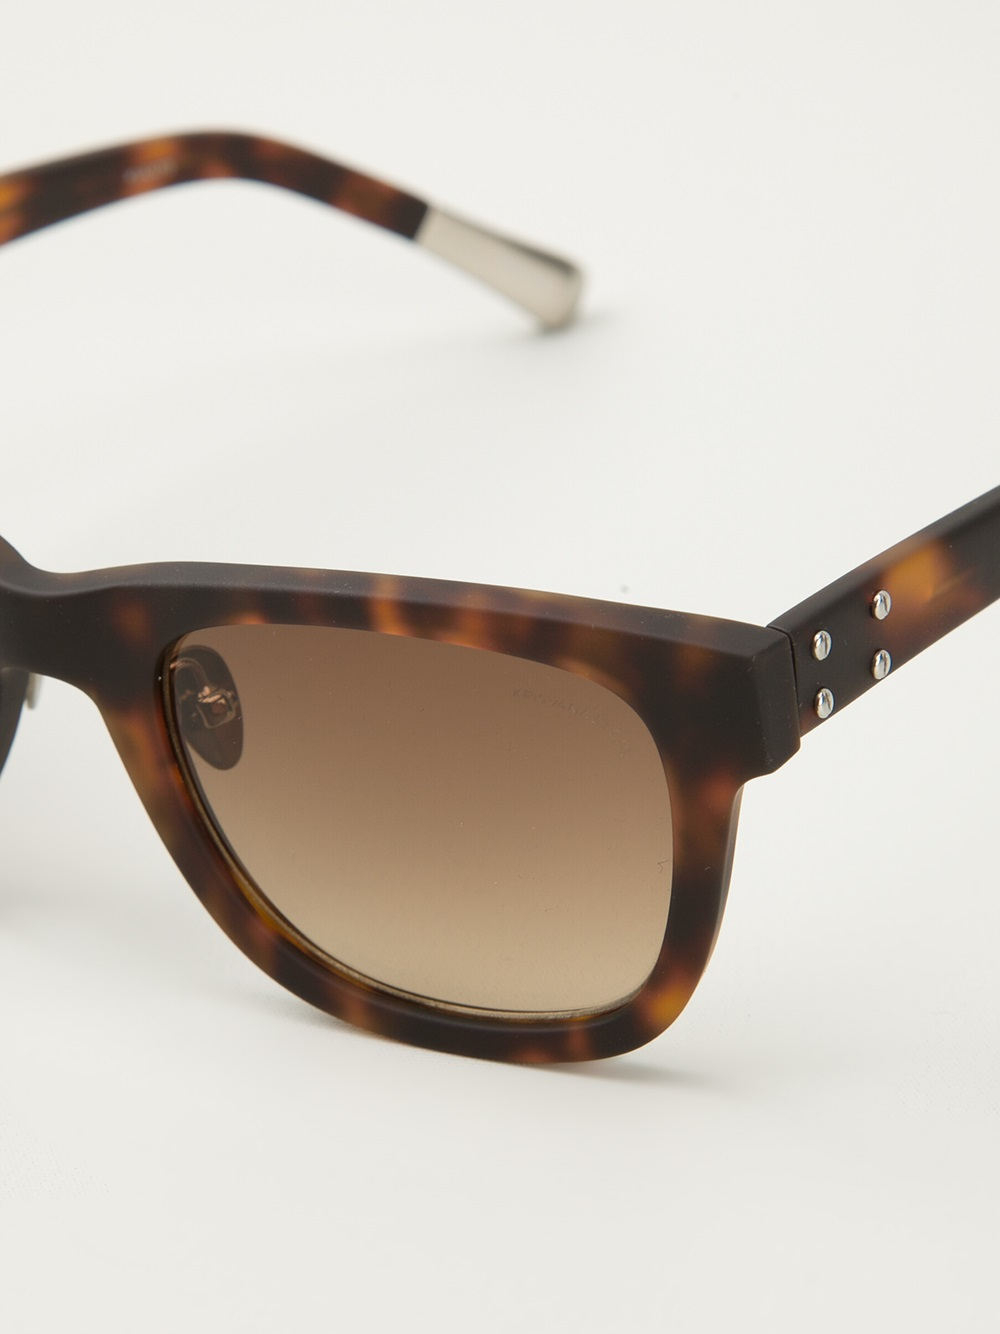 Vans Glasses Frame : Kris van assche Square Frame Sunglasses in Brown for Men ...